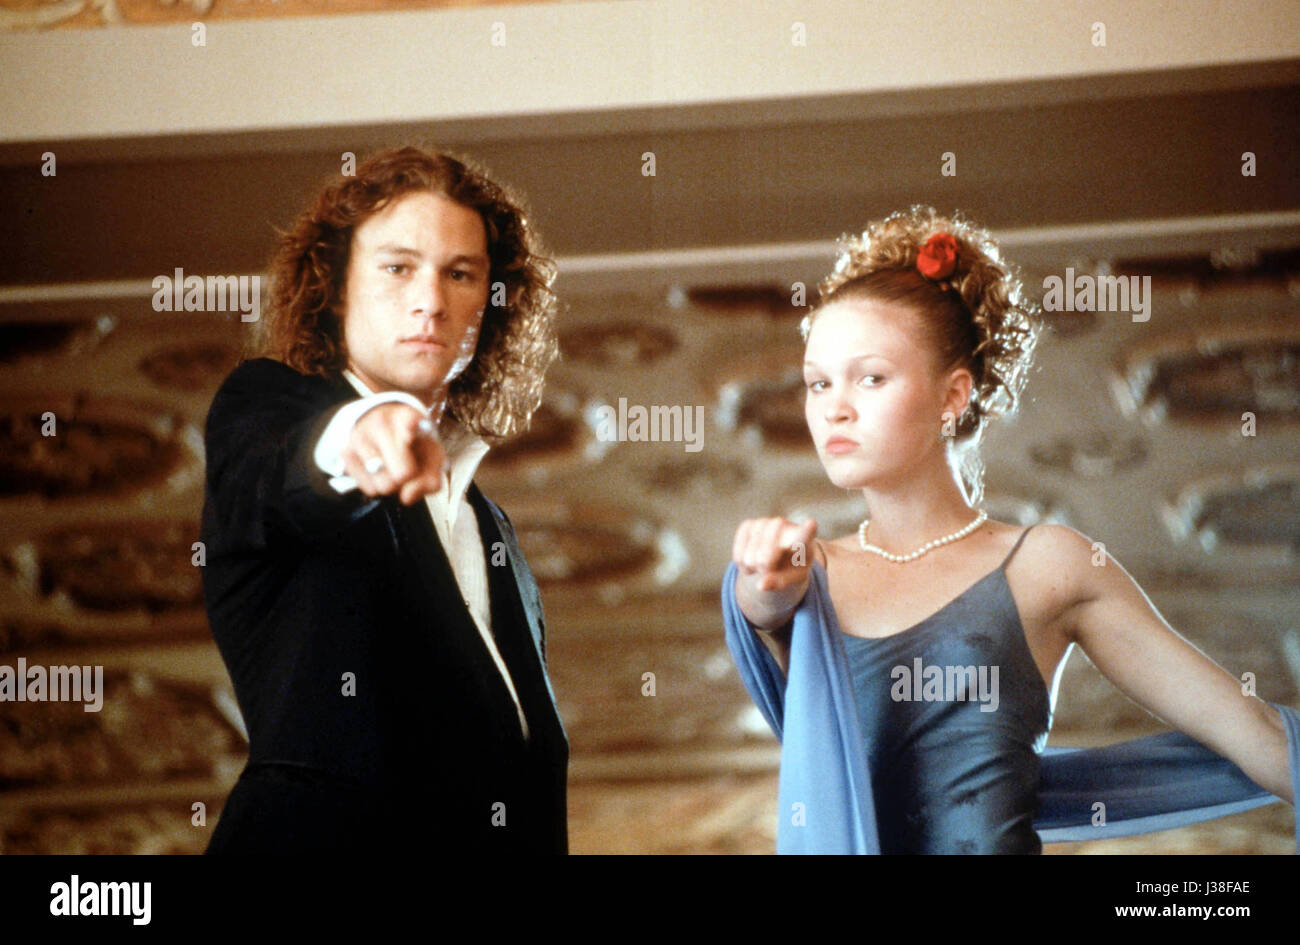 10thingsihateaboutyou Heathledger Juliastiles: Hate It Stock Photos & Hate It Stock Images